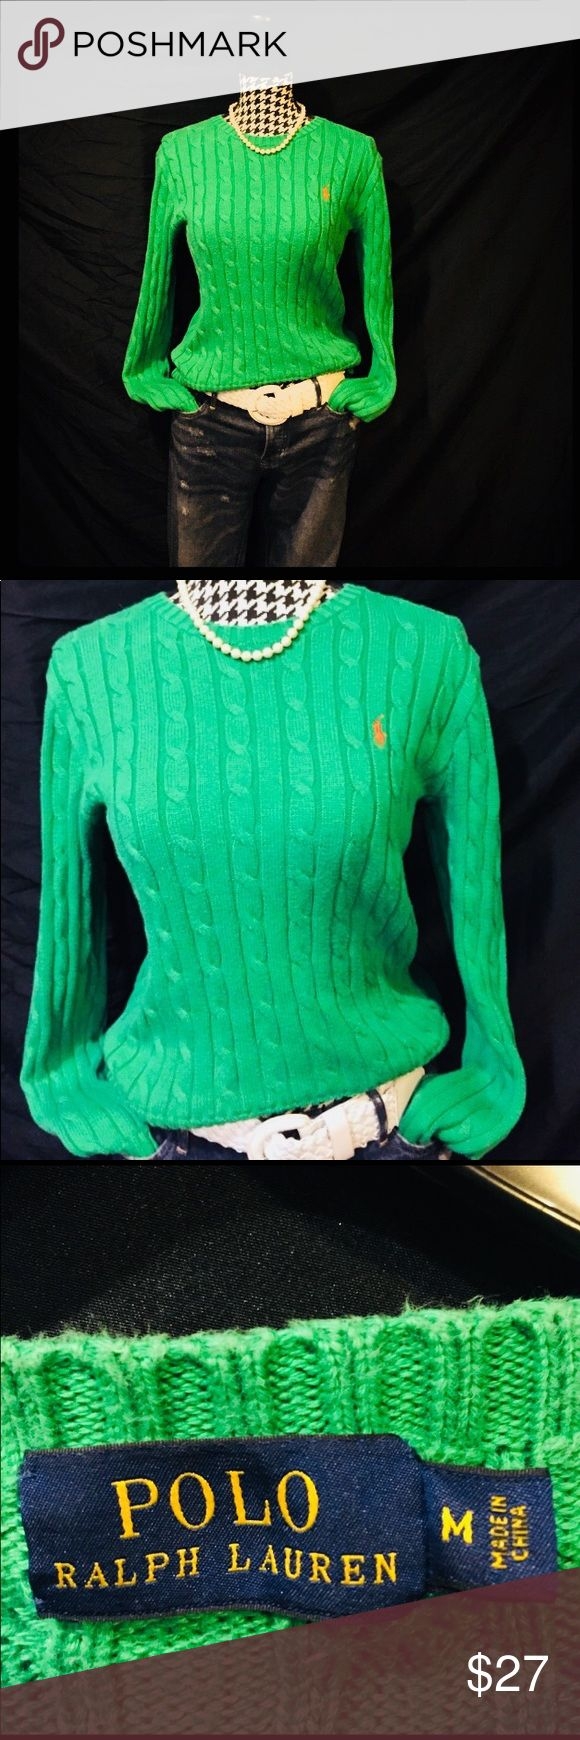 Polo Ralph Lauren Kelly Green Cable Knit Sweater Slim fit Kelly green with orange pony cable knit sweater By Ralph Lauren size M brighten up your winter sweater wardrobe also perfect for early spring days! Polo by Ralph Lauren Sweaters Crew & Scoop Necks